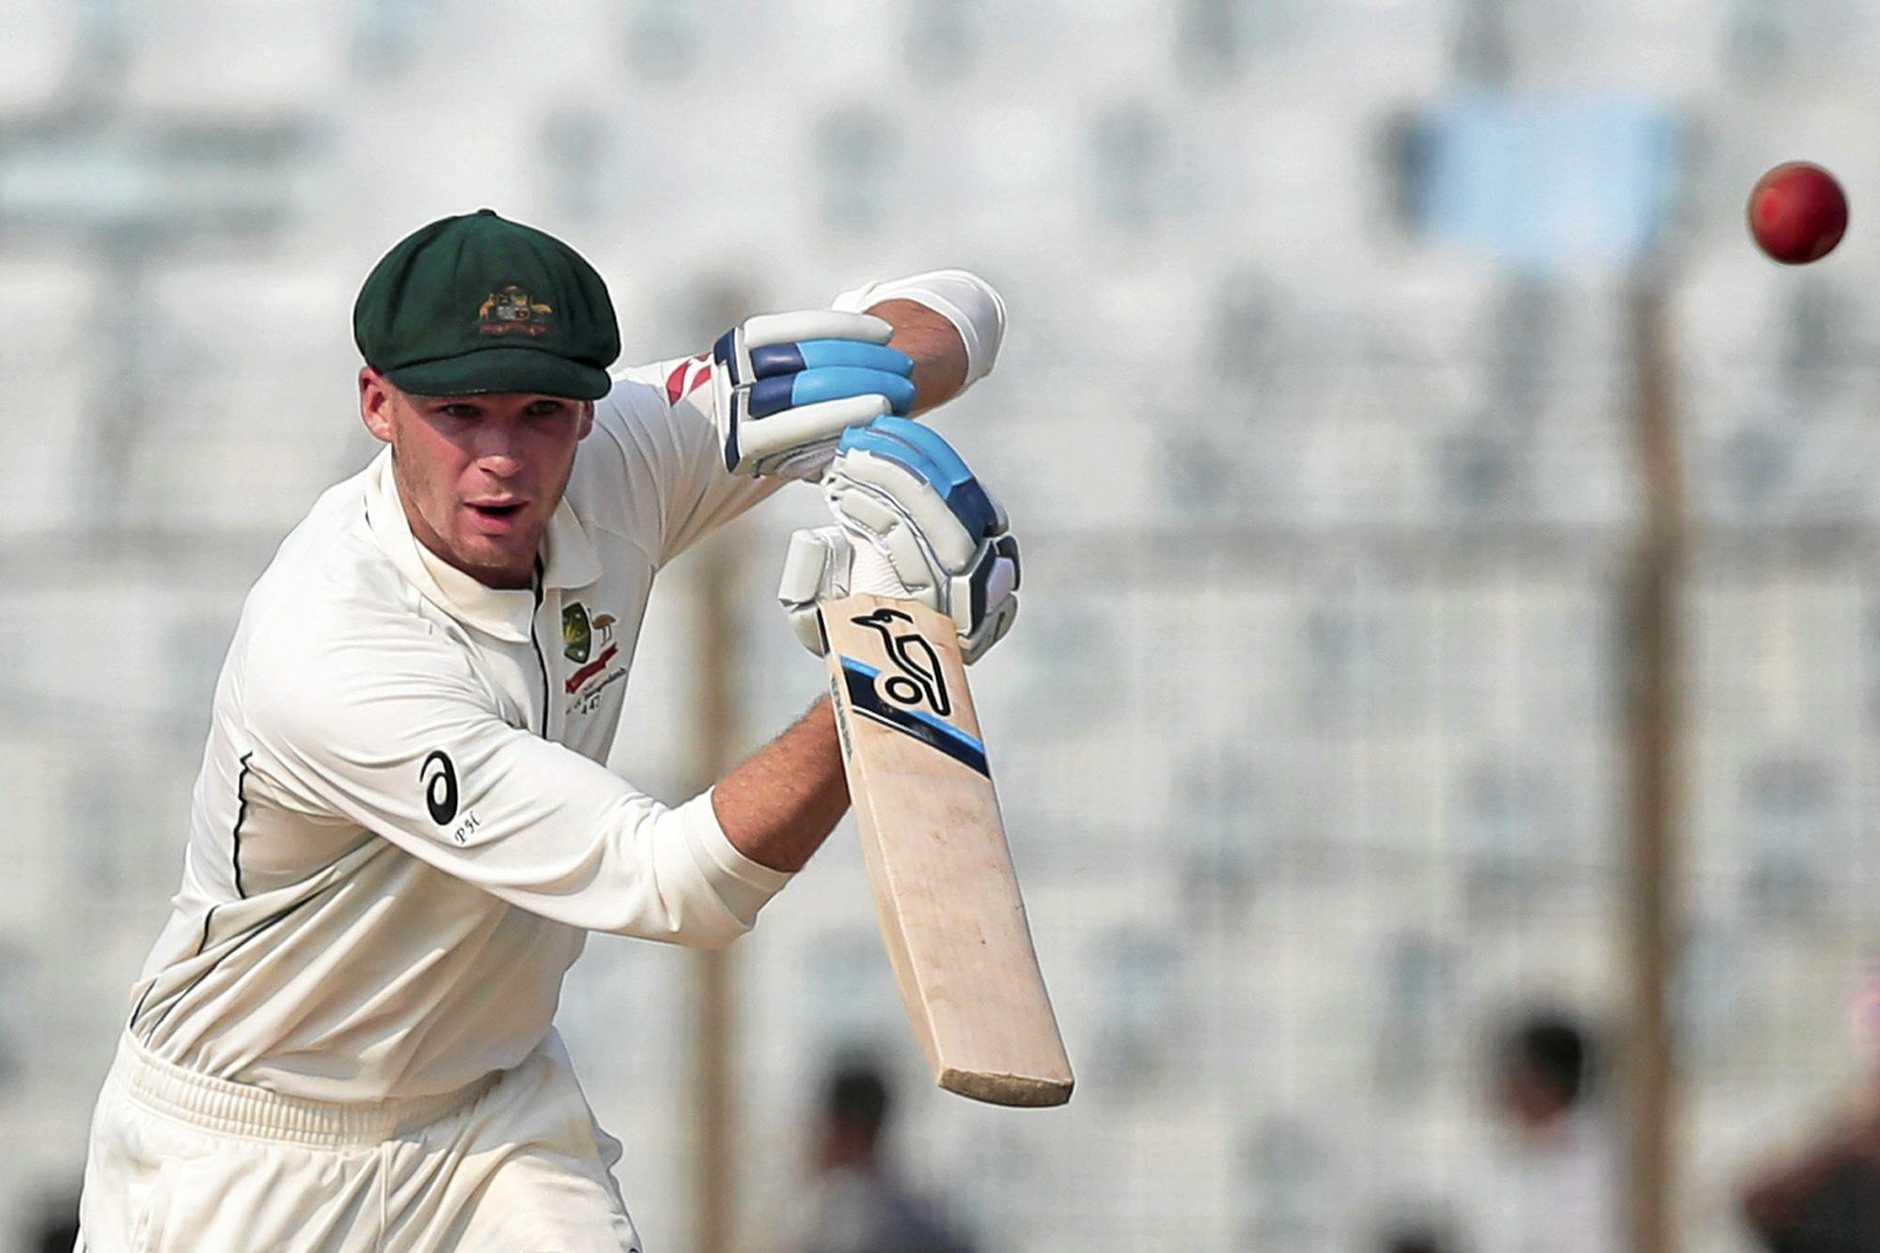 Australia's Peter Handscomb plays a shot during the second day of their second test cricket match against Bangladesh in Chittagong, Bangladesh, Tuesday, Sept. 5, 2017. (AP Photo/A.M. Ahad)